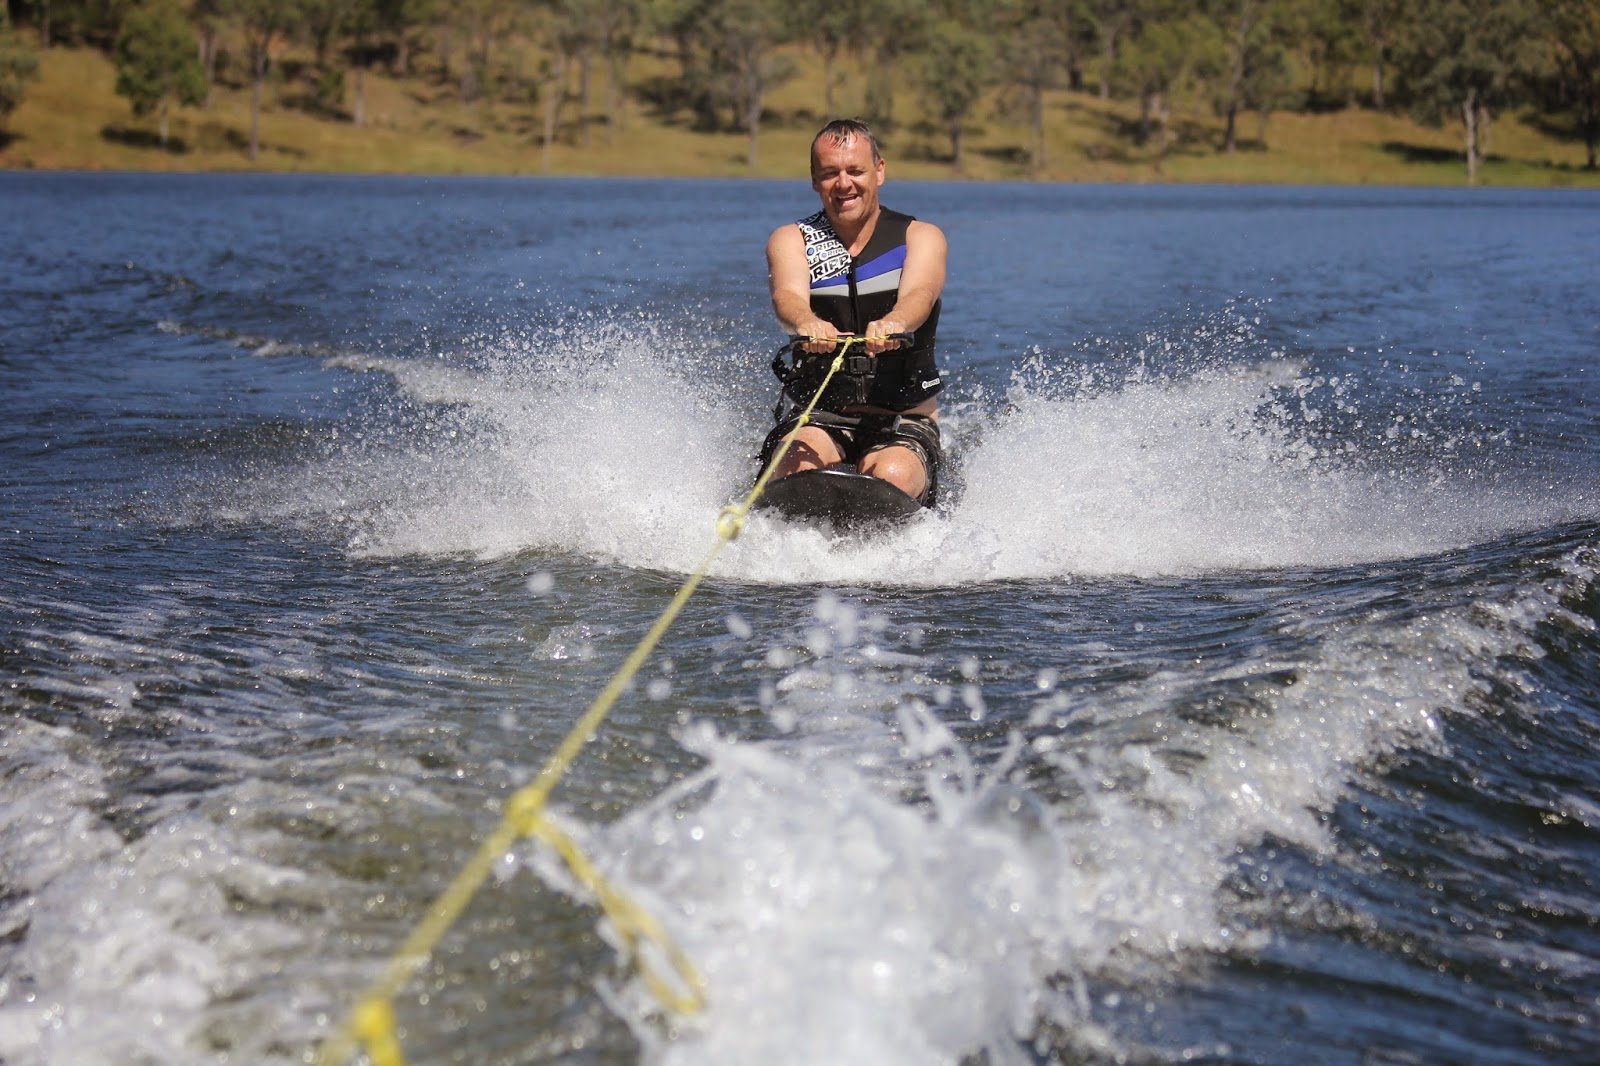 ActionDad KneeBoarding